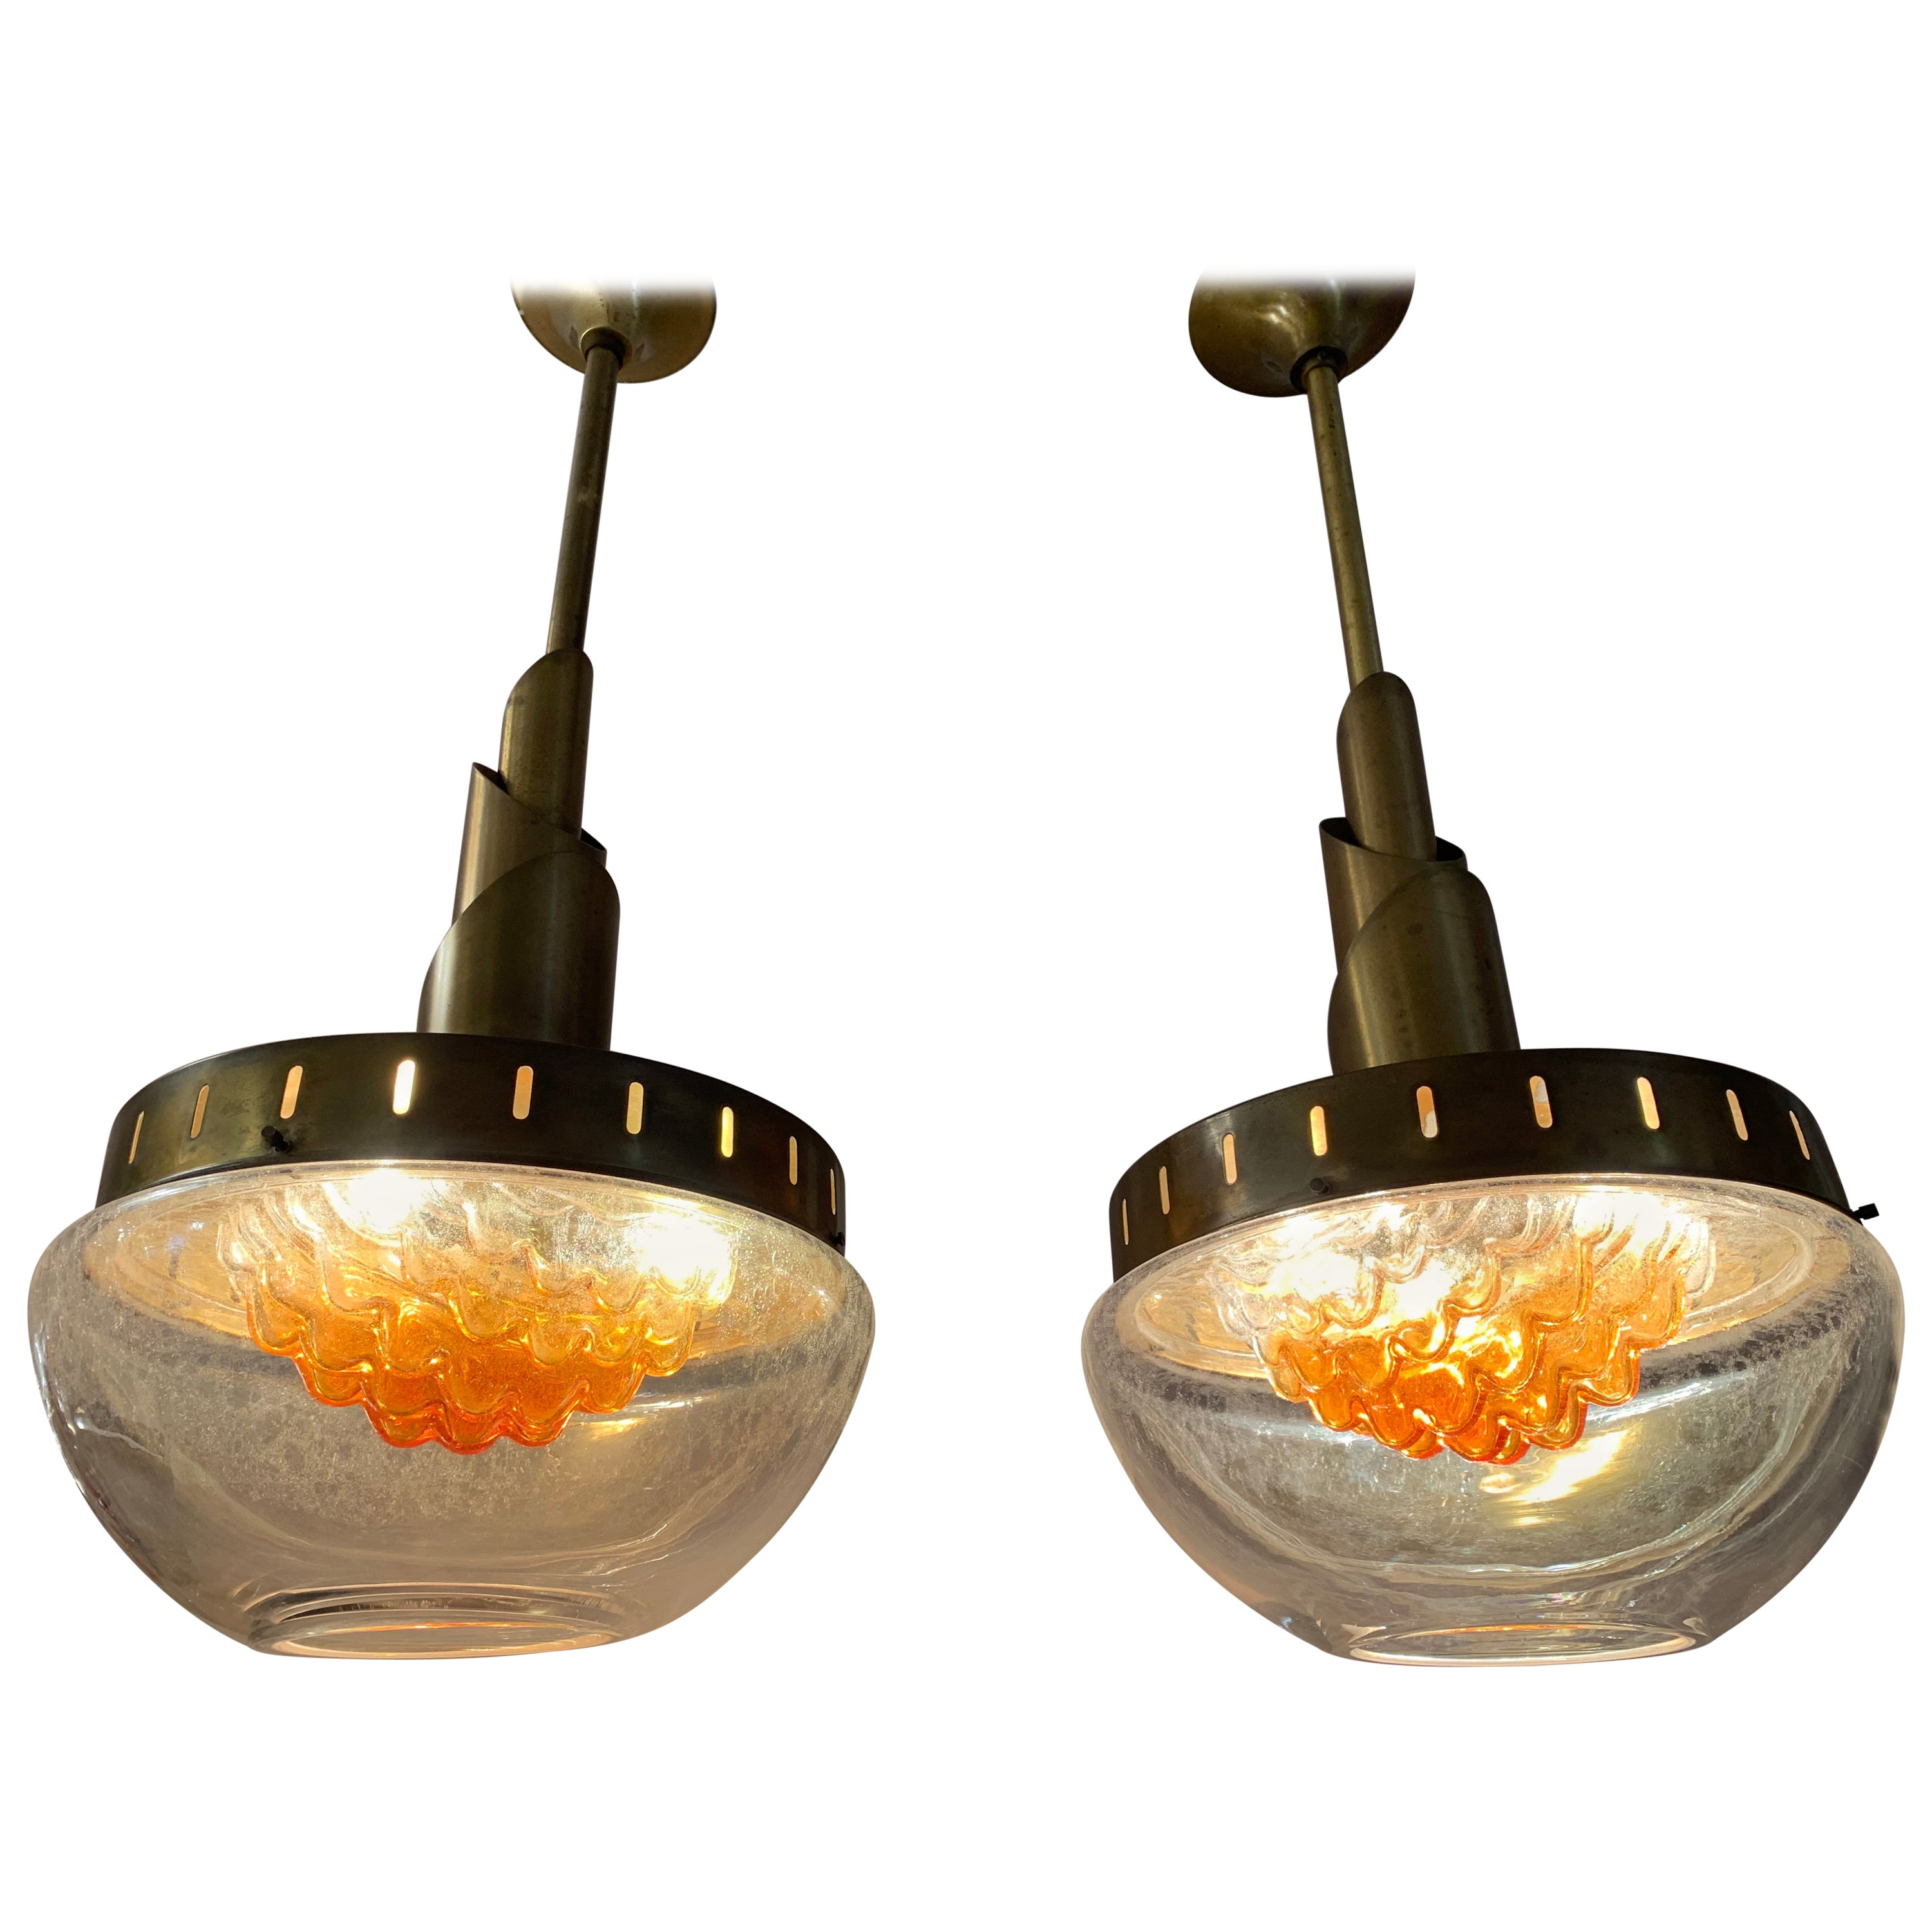 Pair of Vintage 1960s Mazzega Murano Glass Hanging Pendant Lights by Carlo Nason